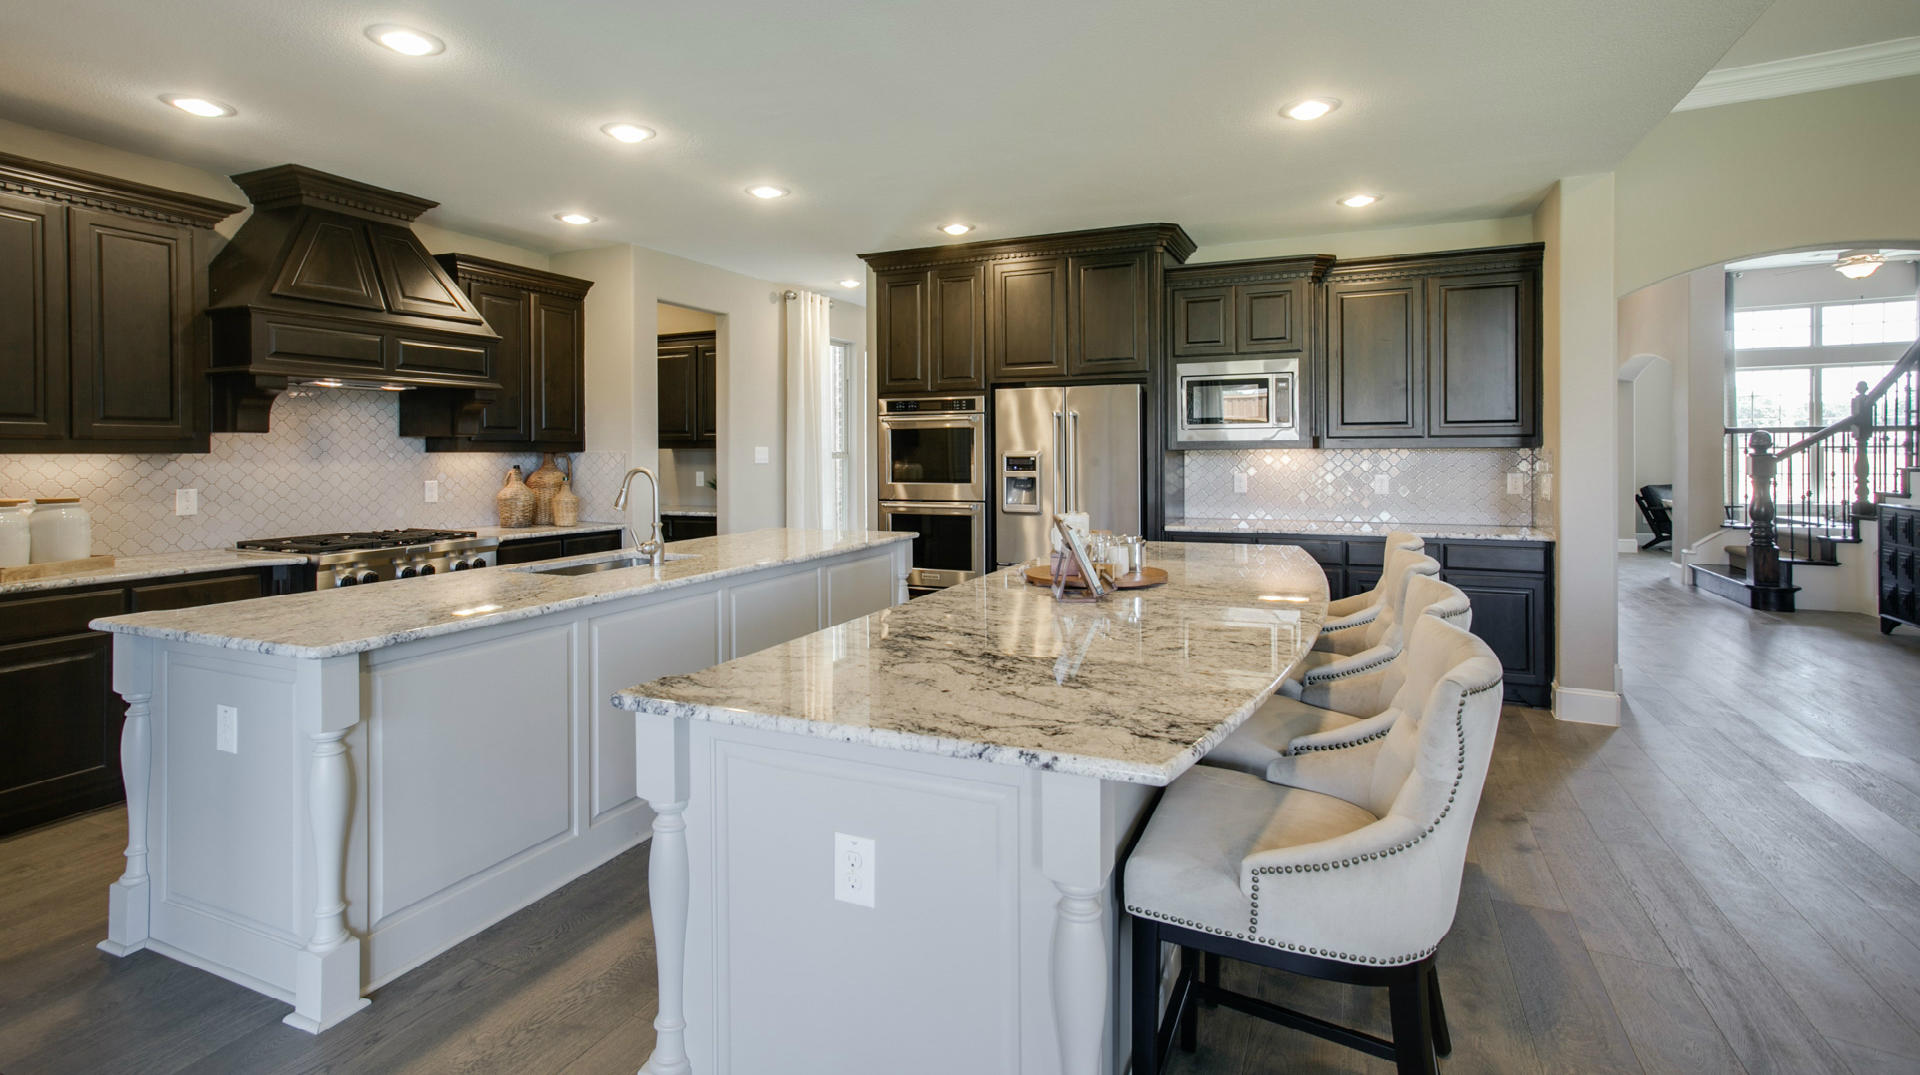 Reserve at Forest Glenn by Pulte Homes image 8